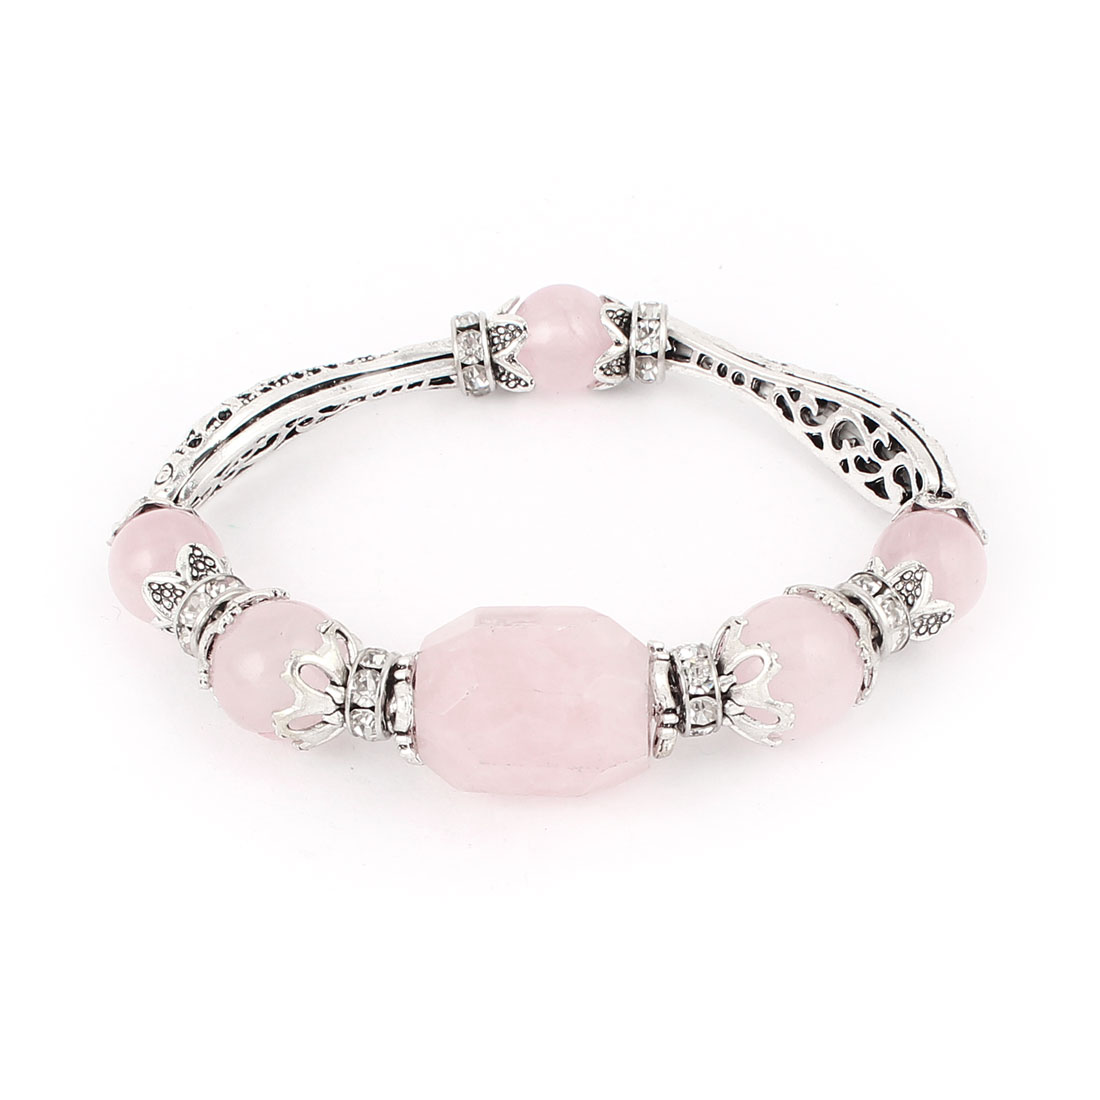 Silver Tone Fish Shape Pink Faceted Stone Decor Bracelet Bangle for Lady - image 2 of 2